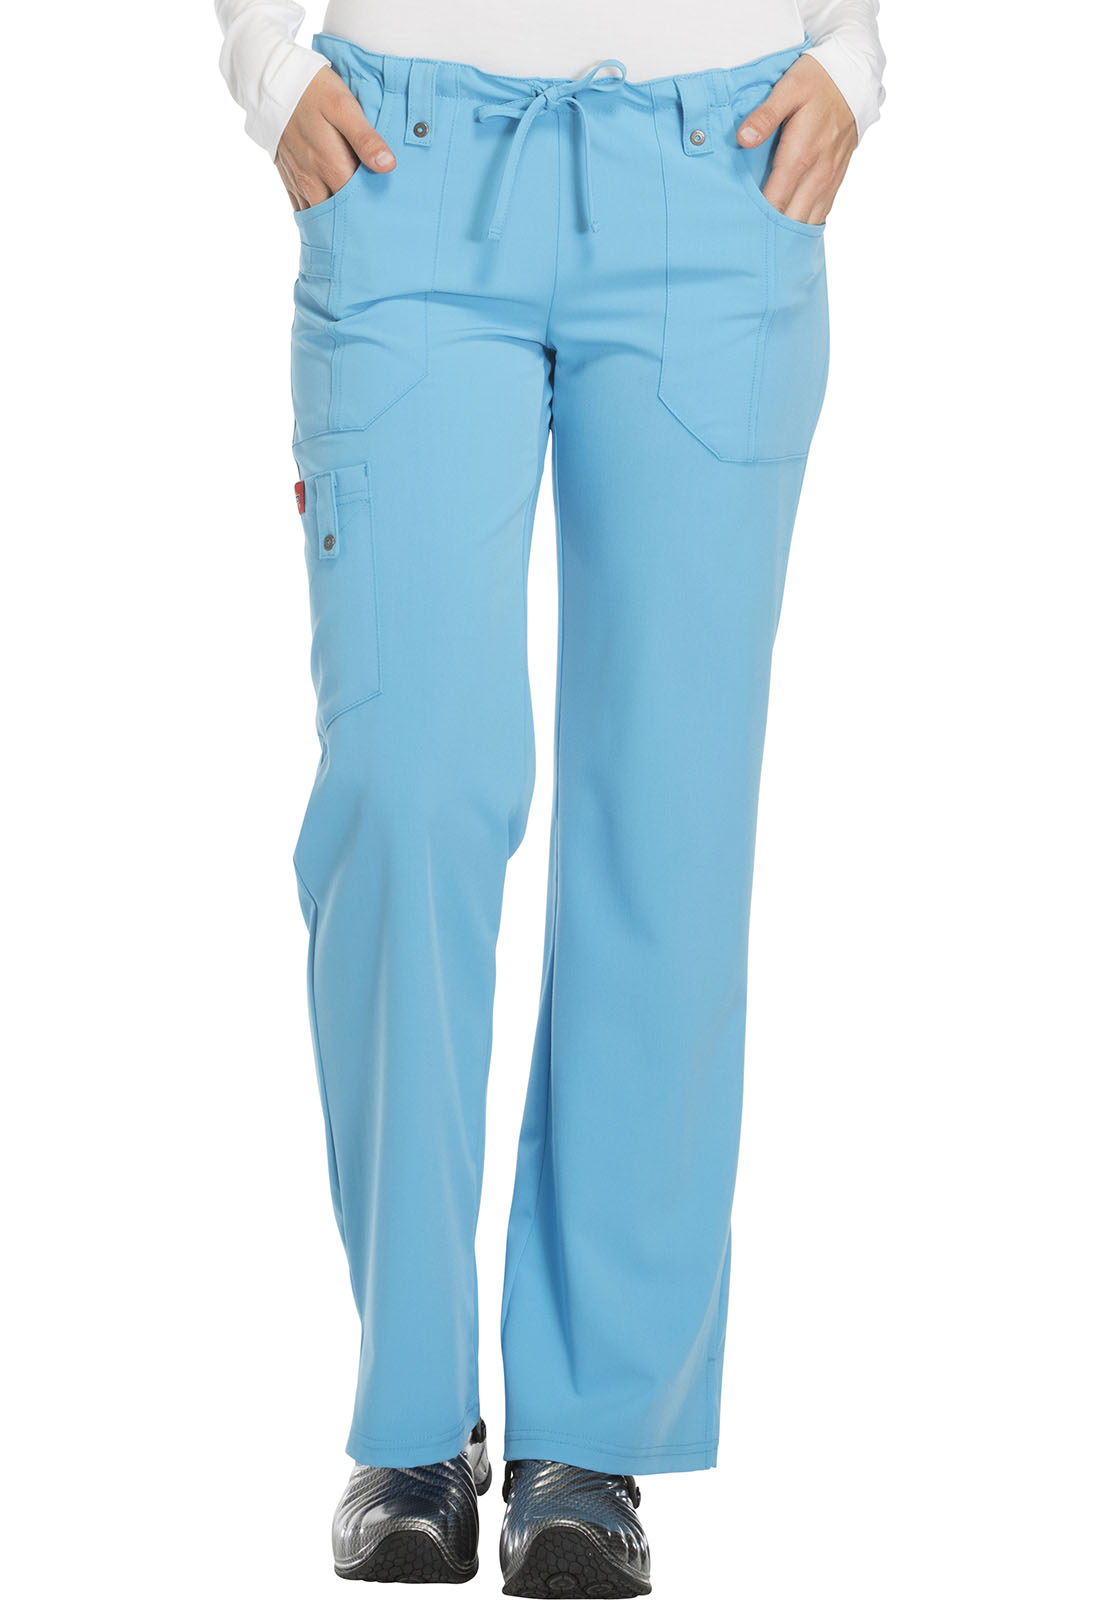 228b53895de Xtreme Stretch Mid Rise Drawstring Cargo Pant in True Blue 82011 ...